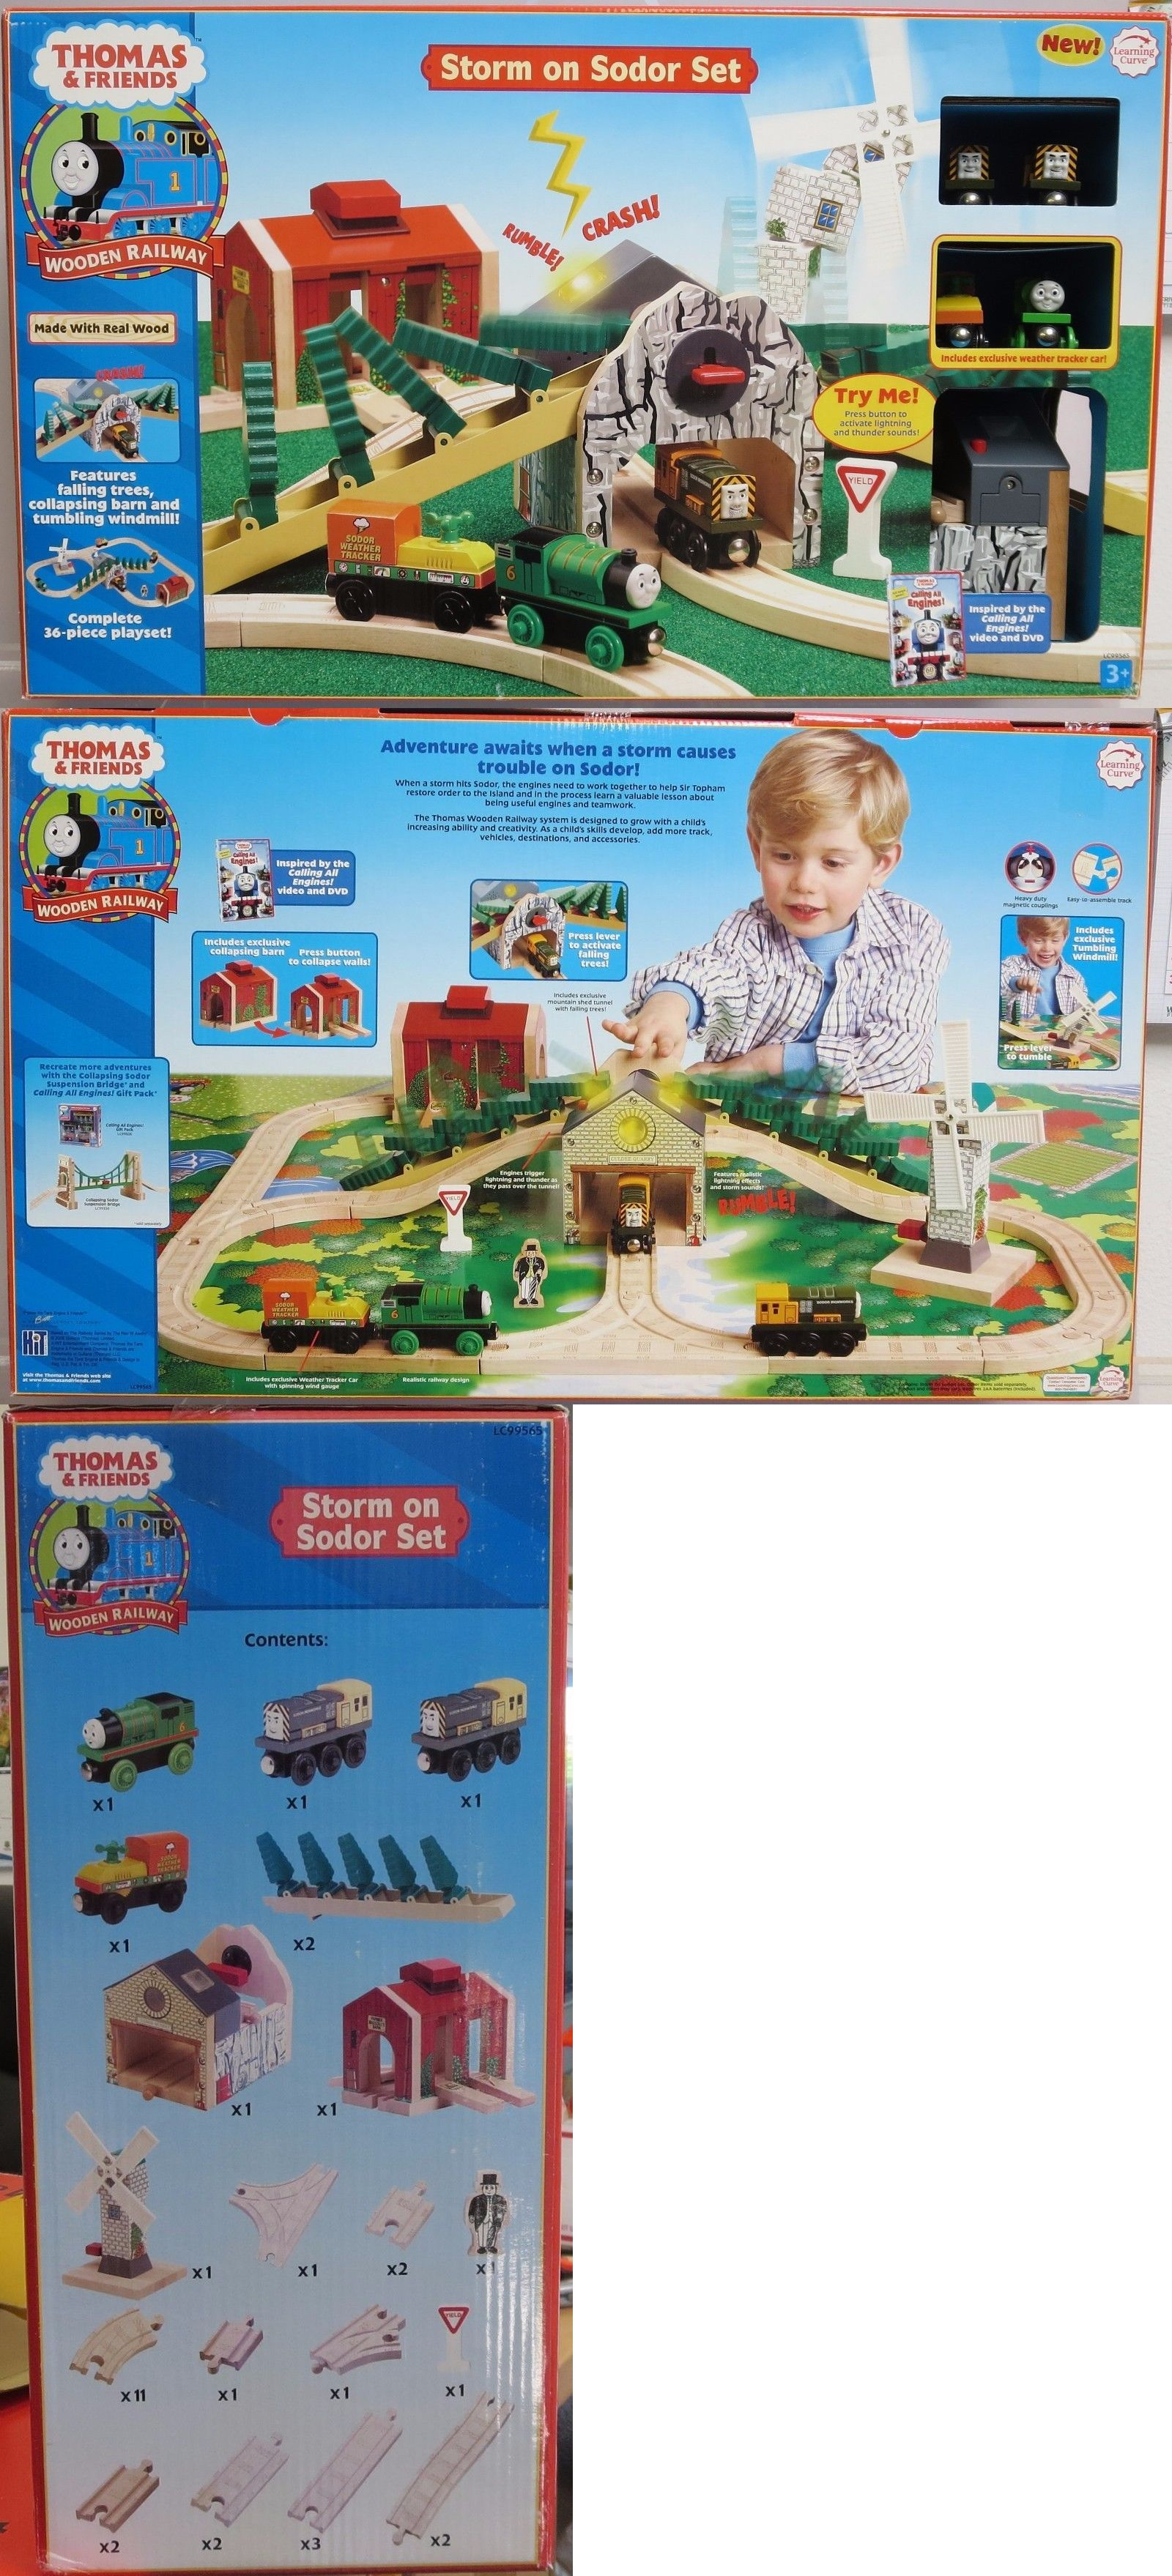 Train Sets 113519 Thomas And Friends Wooden Railway Storm On Sodor Set Lc99565 Nib Rare Buy It Now Only 199 99 On E Train Sets Train Thomas And Friends